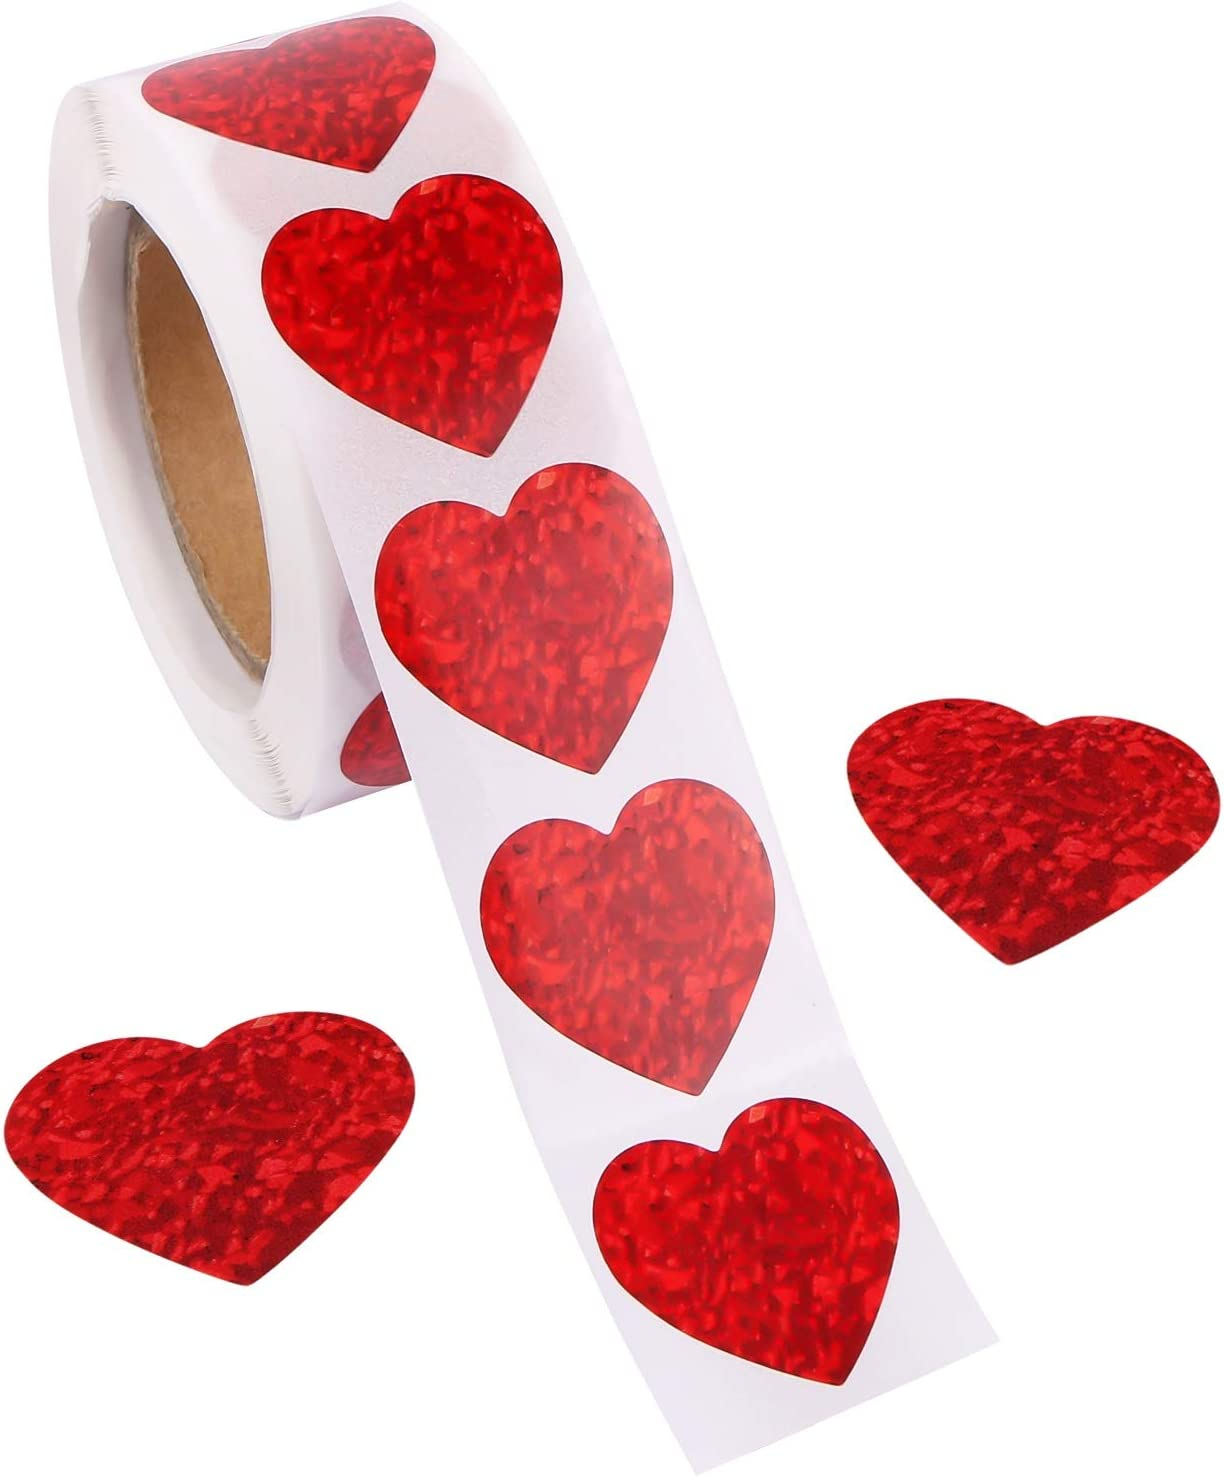 Harapu 1 inch Wide Glitter Heart Stickers Valentine's Love Decorative Label Stickers Valentine's Day Decorations Accessories, 500 Pieces (1 Roll)